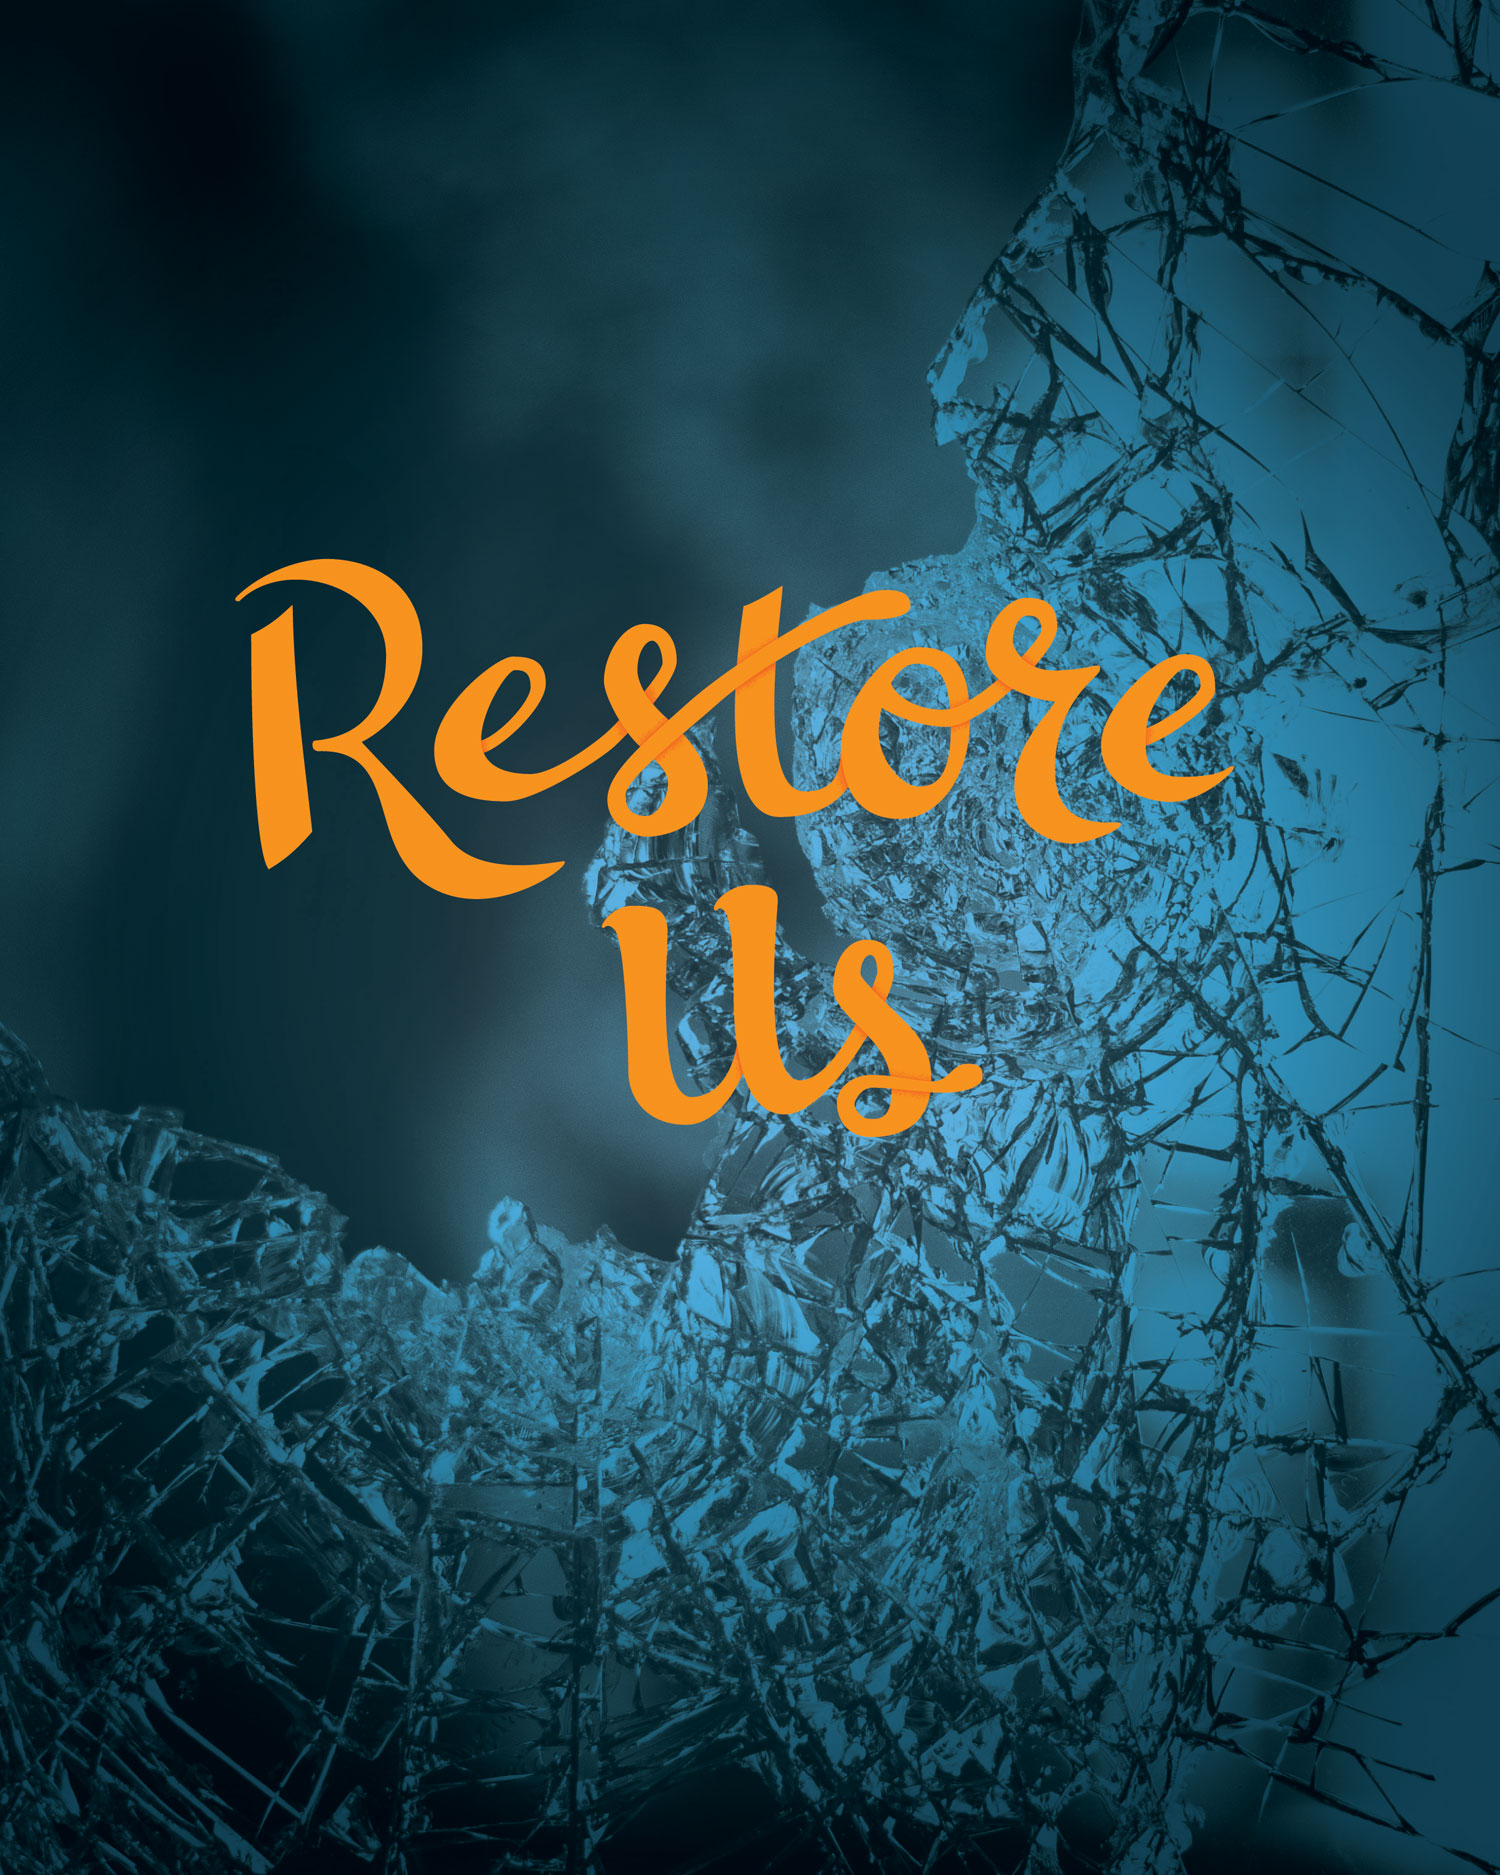 Lettering that reads restore us, overlaid on an image of broken glass.